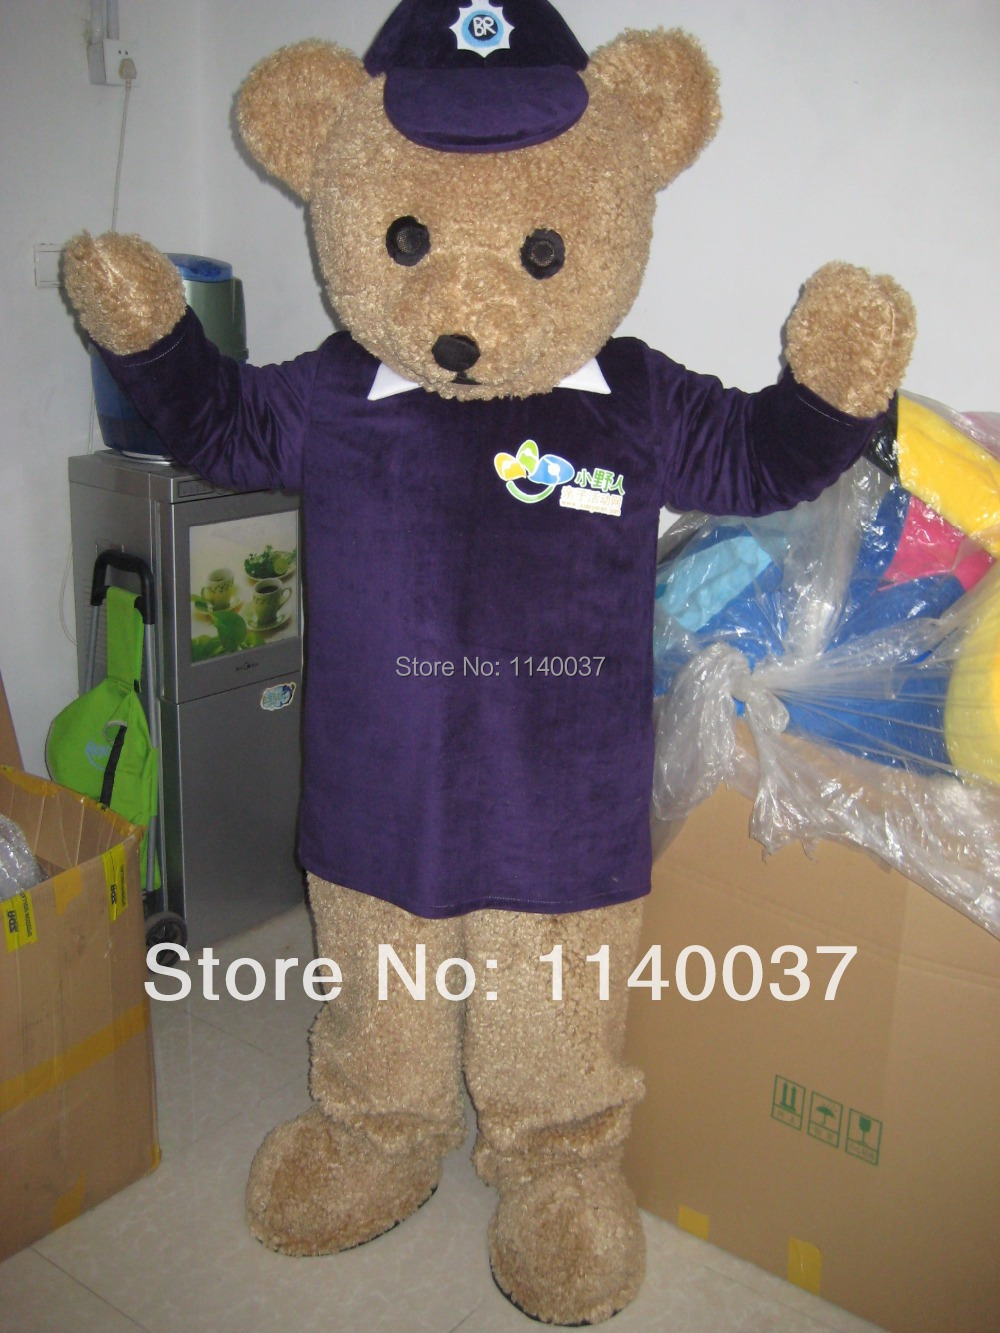 Mascotte ours ted mascotte Costume personnalisé fursuit fantaisie costume cosplay kits fantaisie robe carnaval robe anime thème